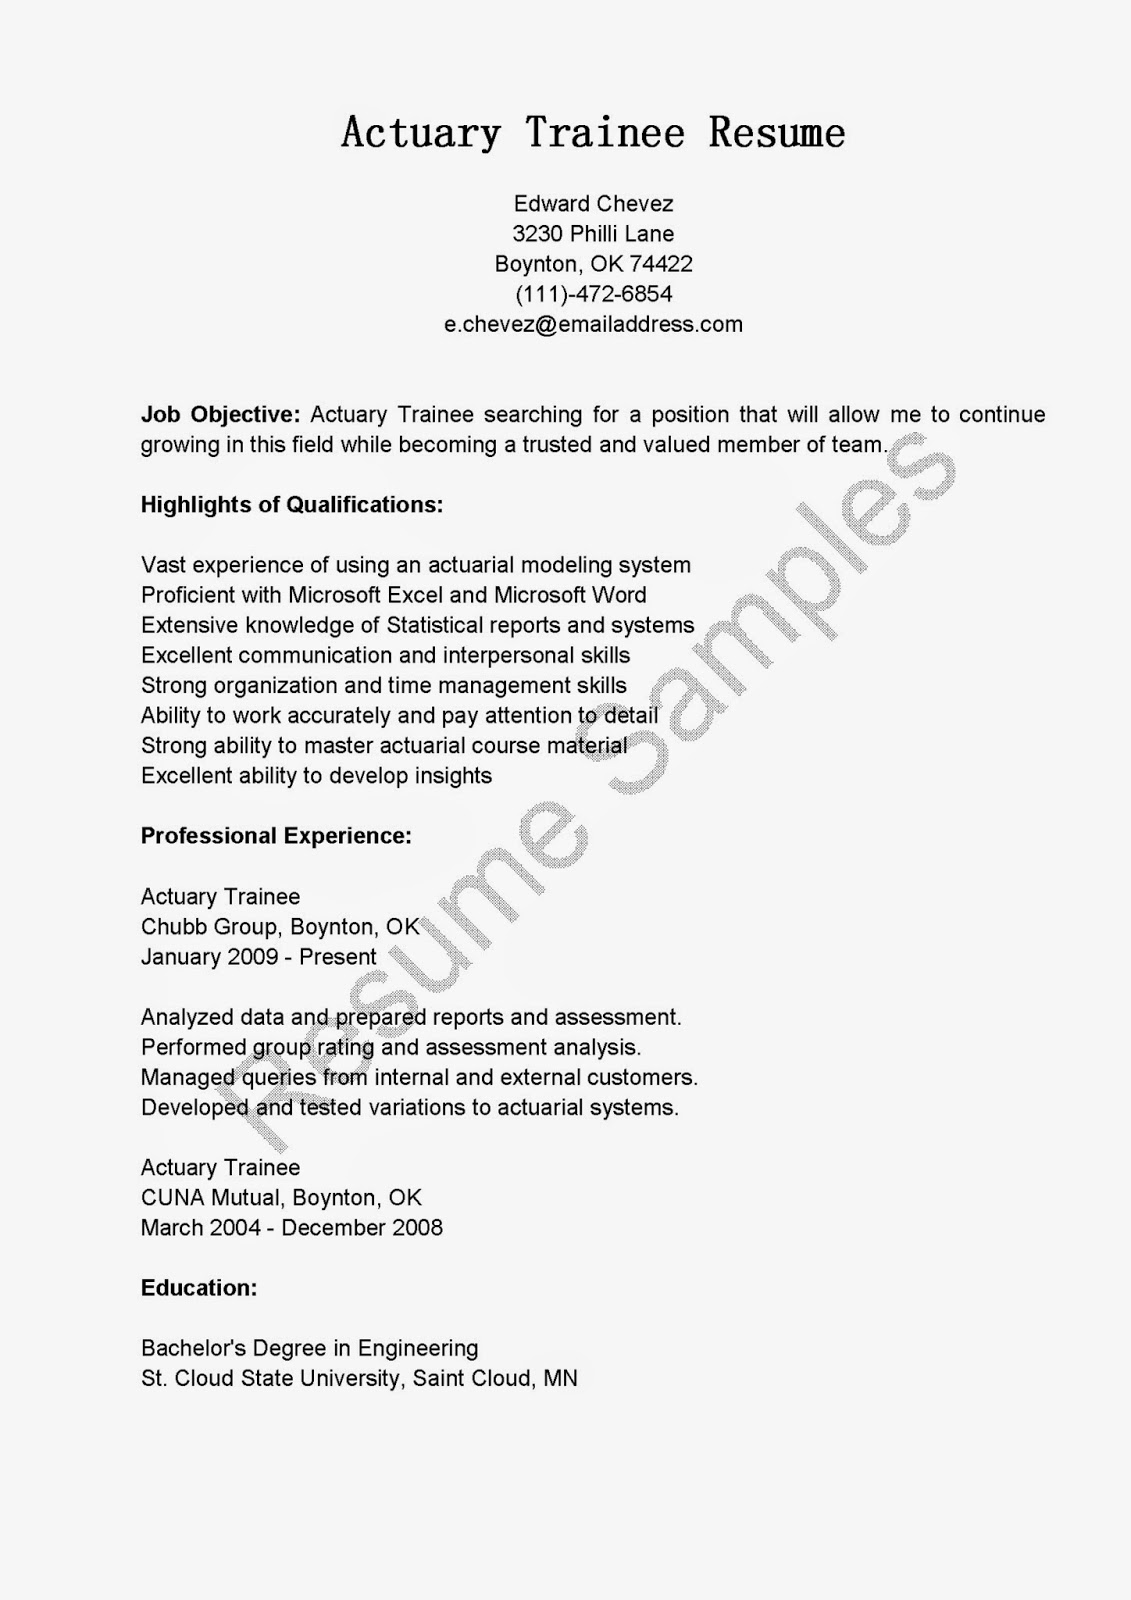 resume samples actuary trainee resume sample. Black Bedroom Furniture Sets. Home Design Ideas